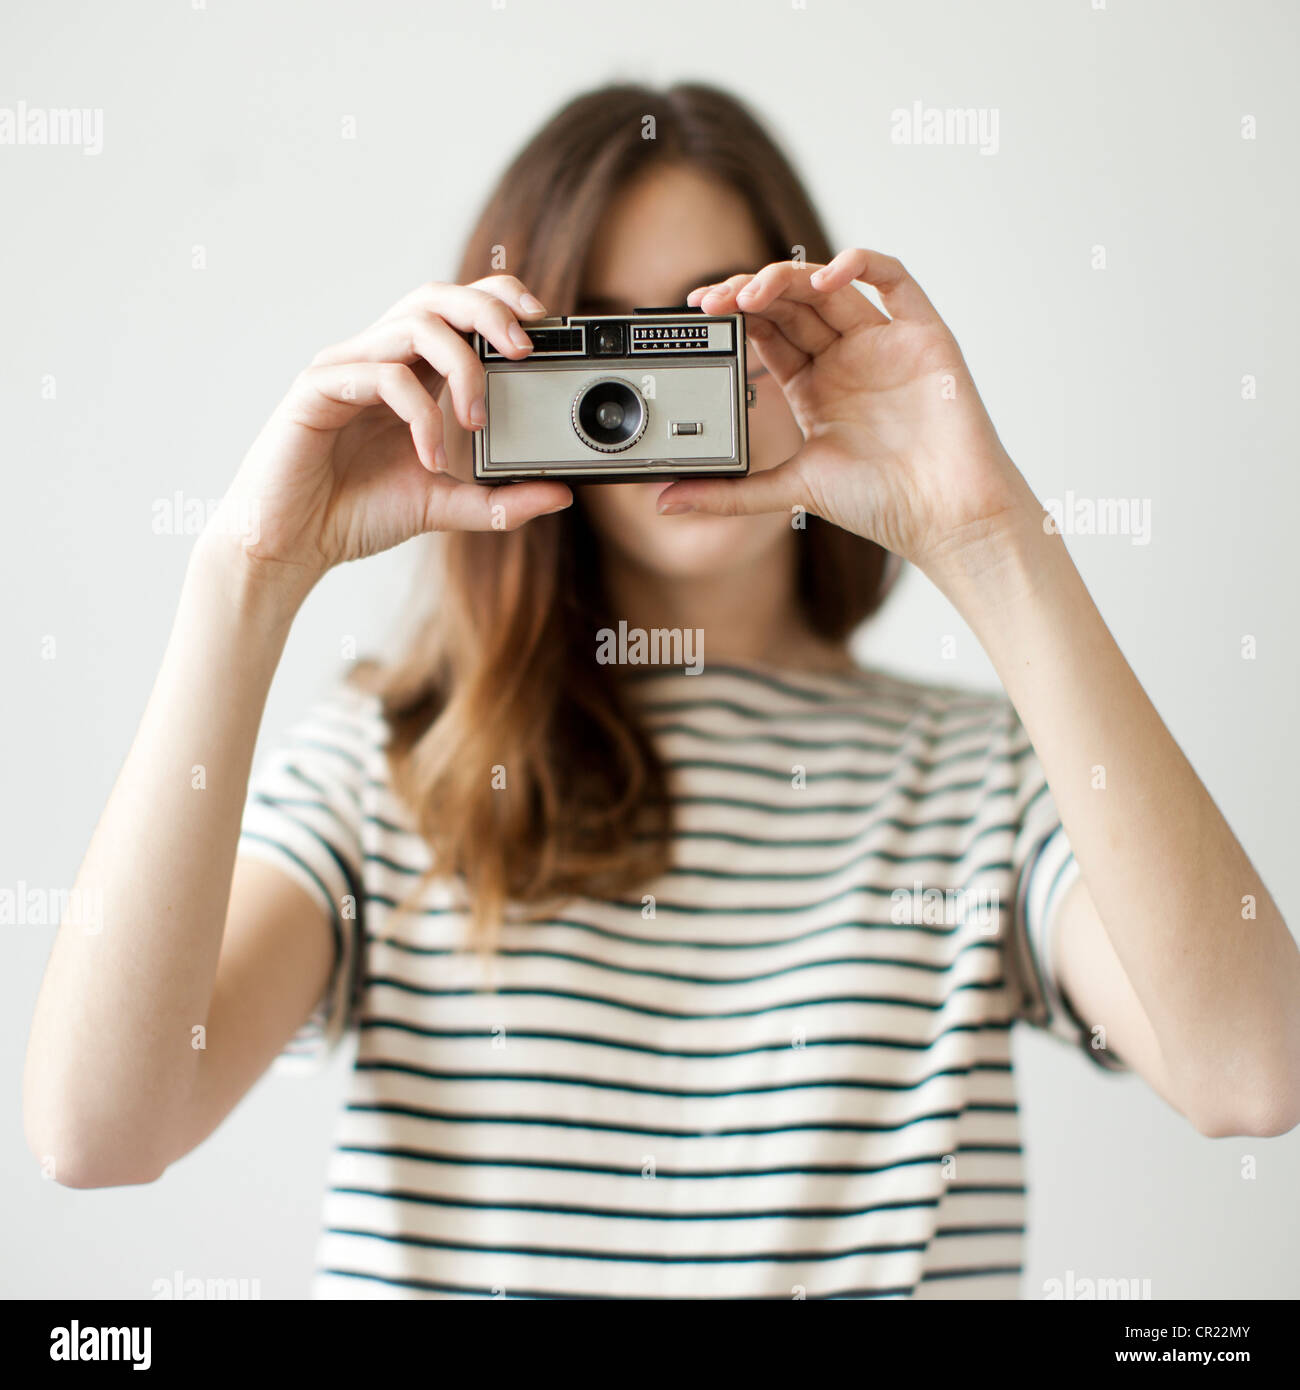 Studio shot of young woman with old-fashioned camera - Stock Image